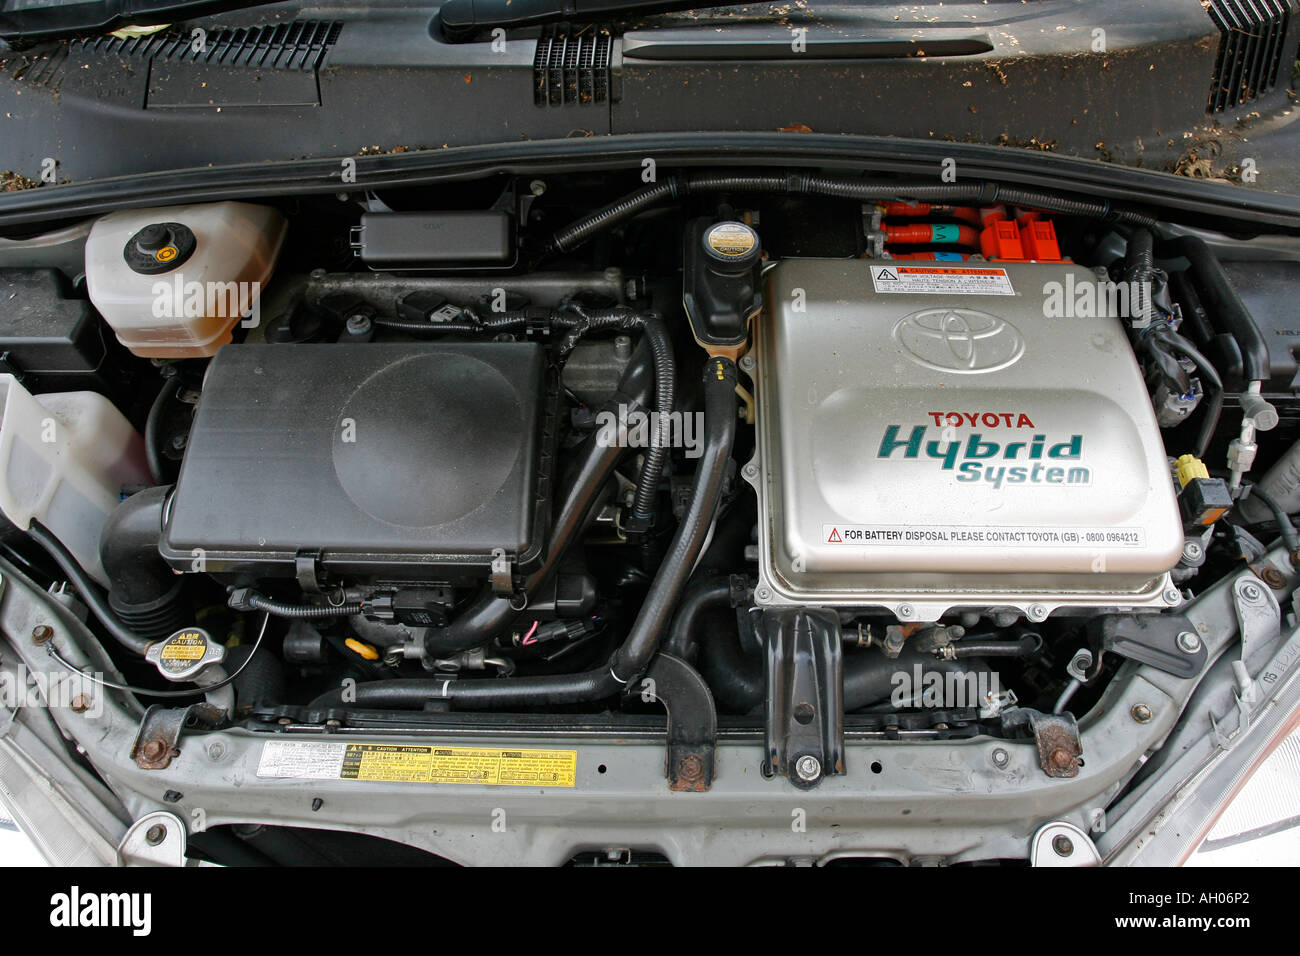 engine of a toyota prius petrol electric hybrid car stock photo royalty free image 8179937 alamy. Black Bedroom Furniture Sets. Home Design Ideas